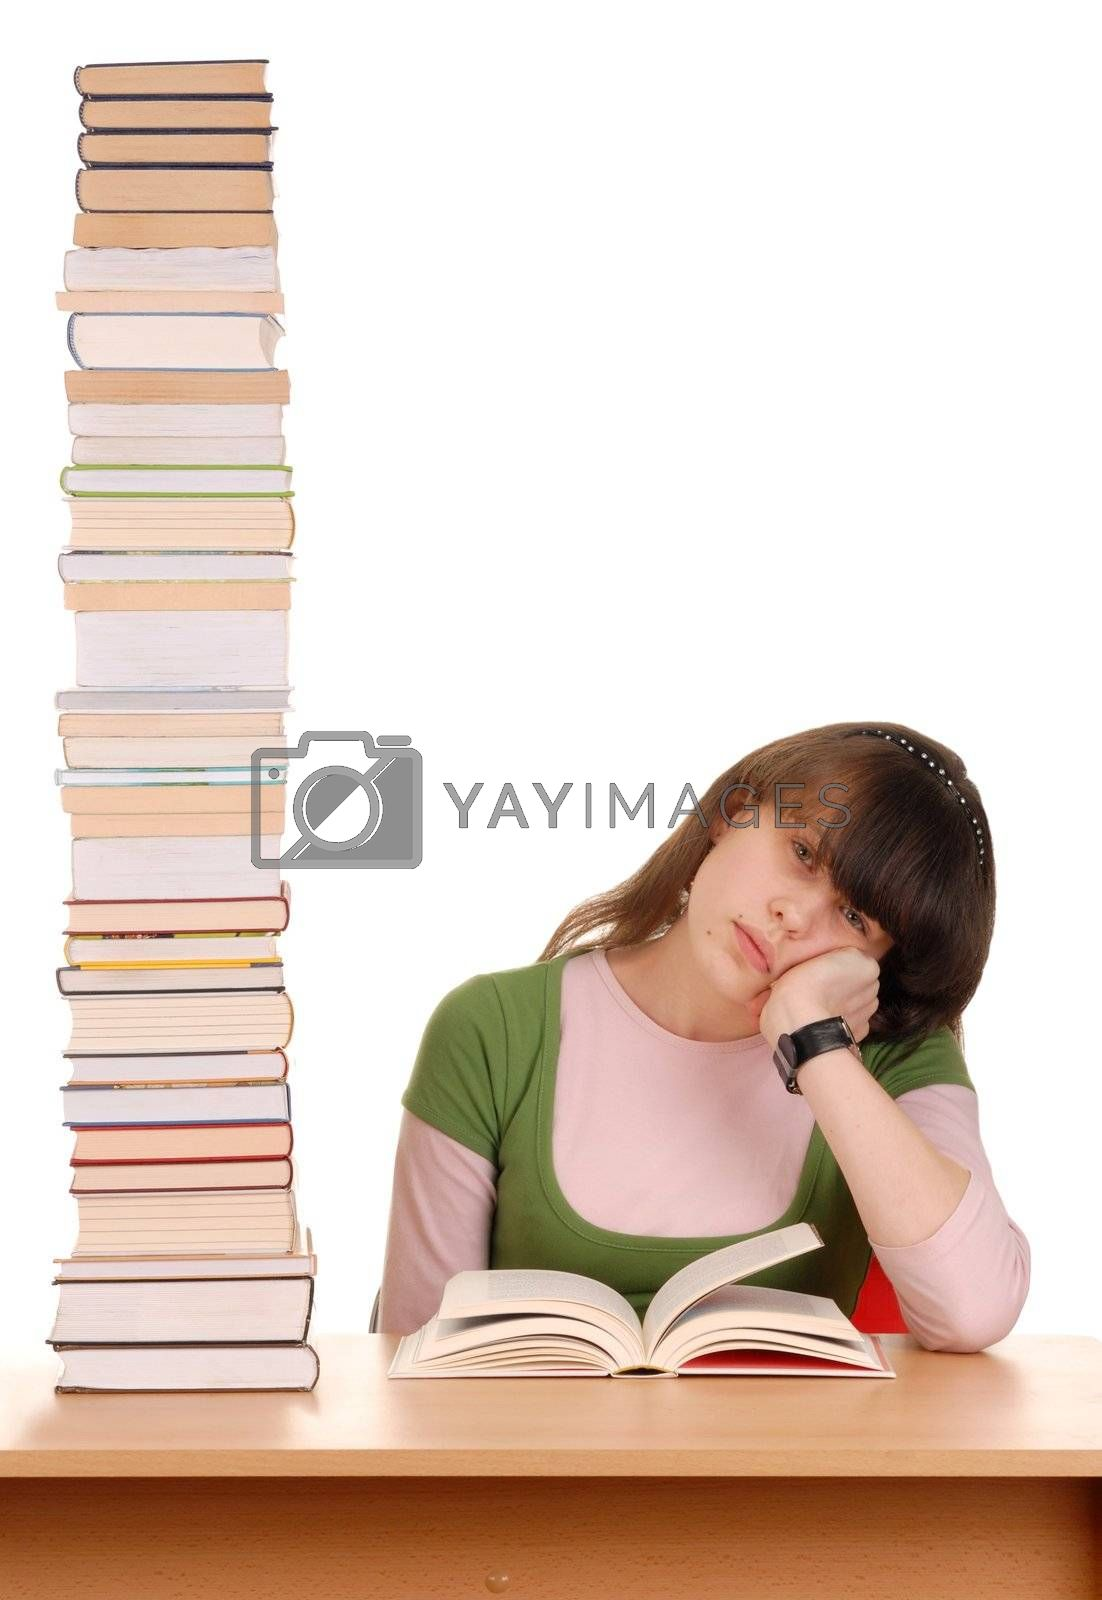 Schoolgirl with high stack of books to read